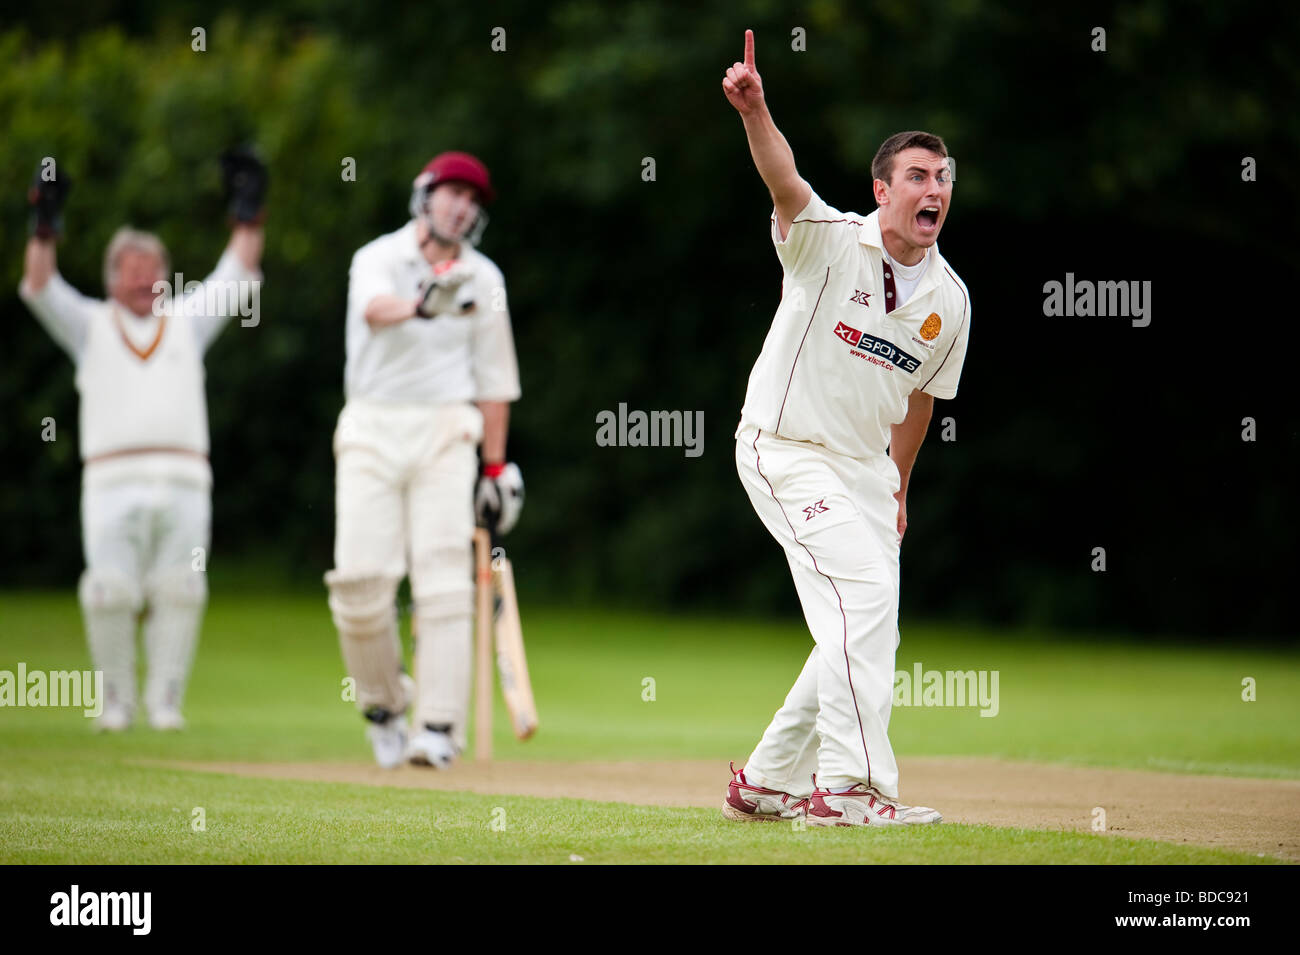 Bowler appealing leg before wicket - Stock Image